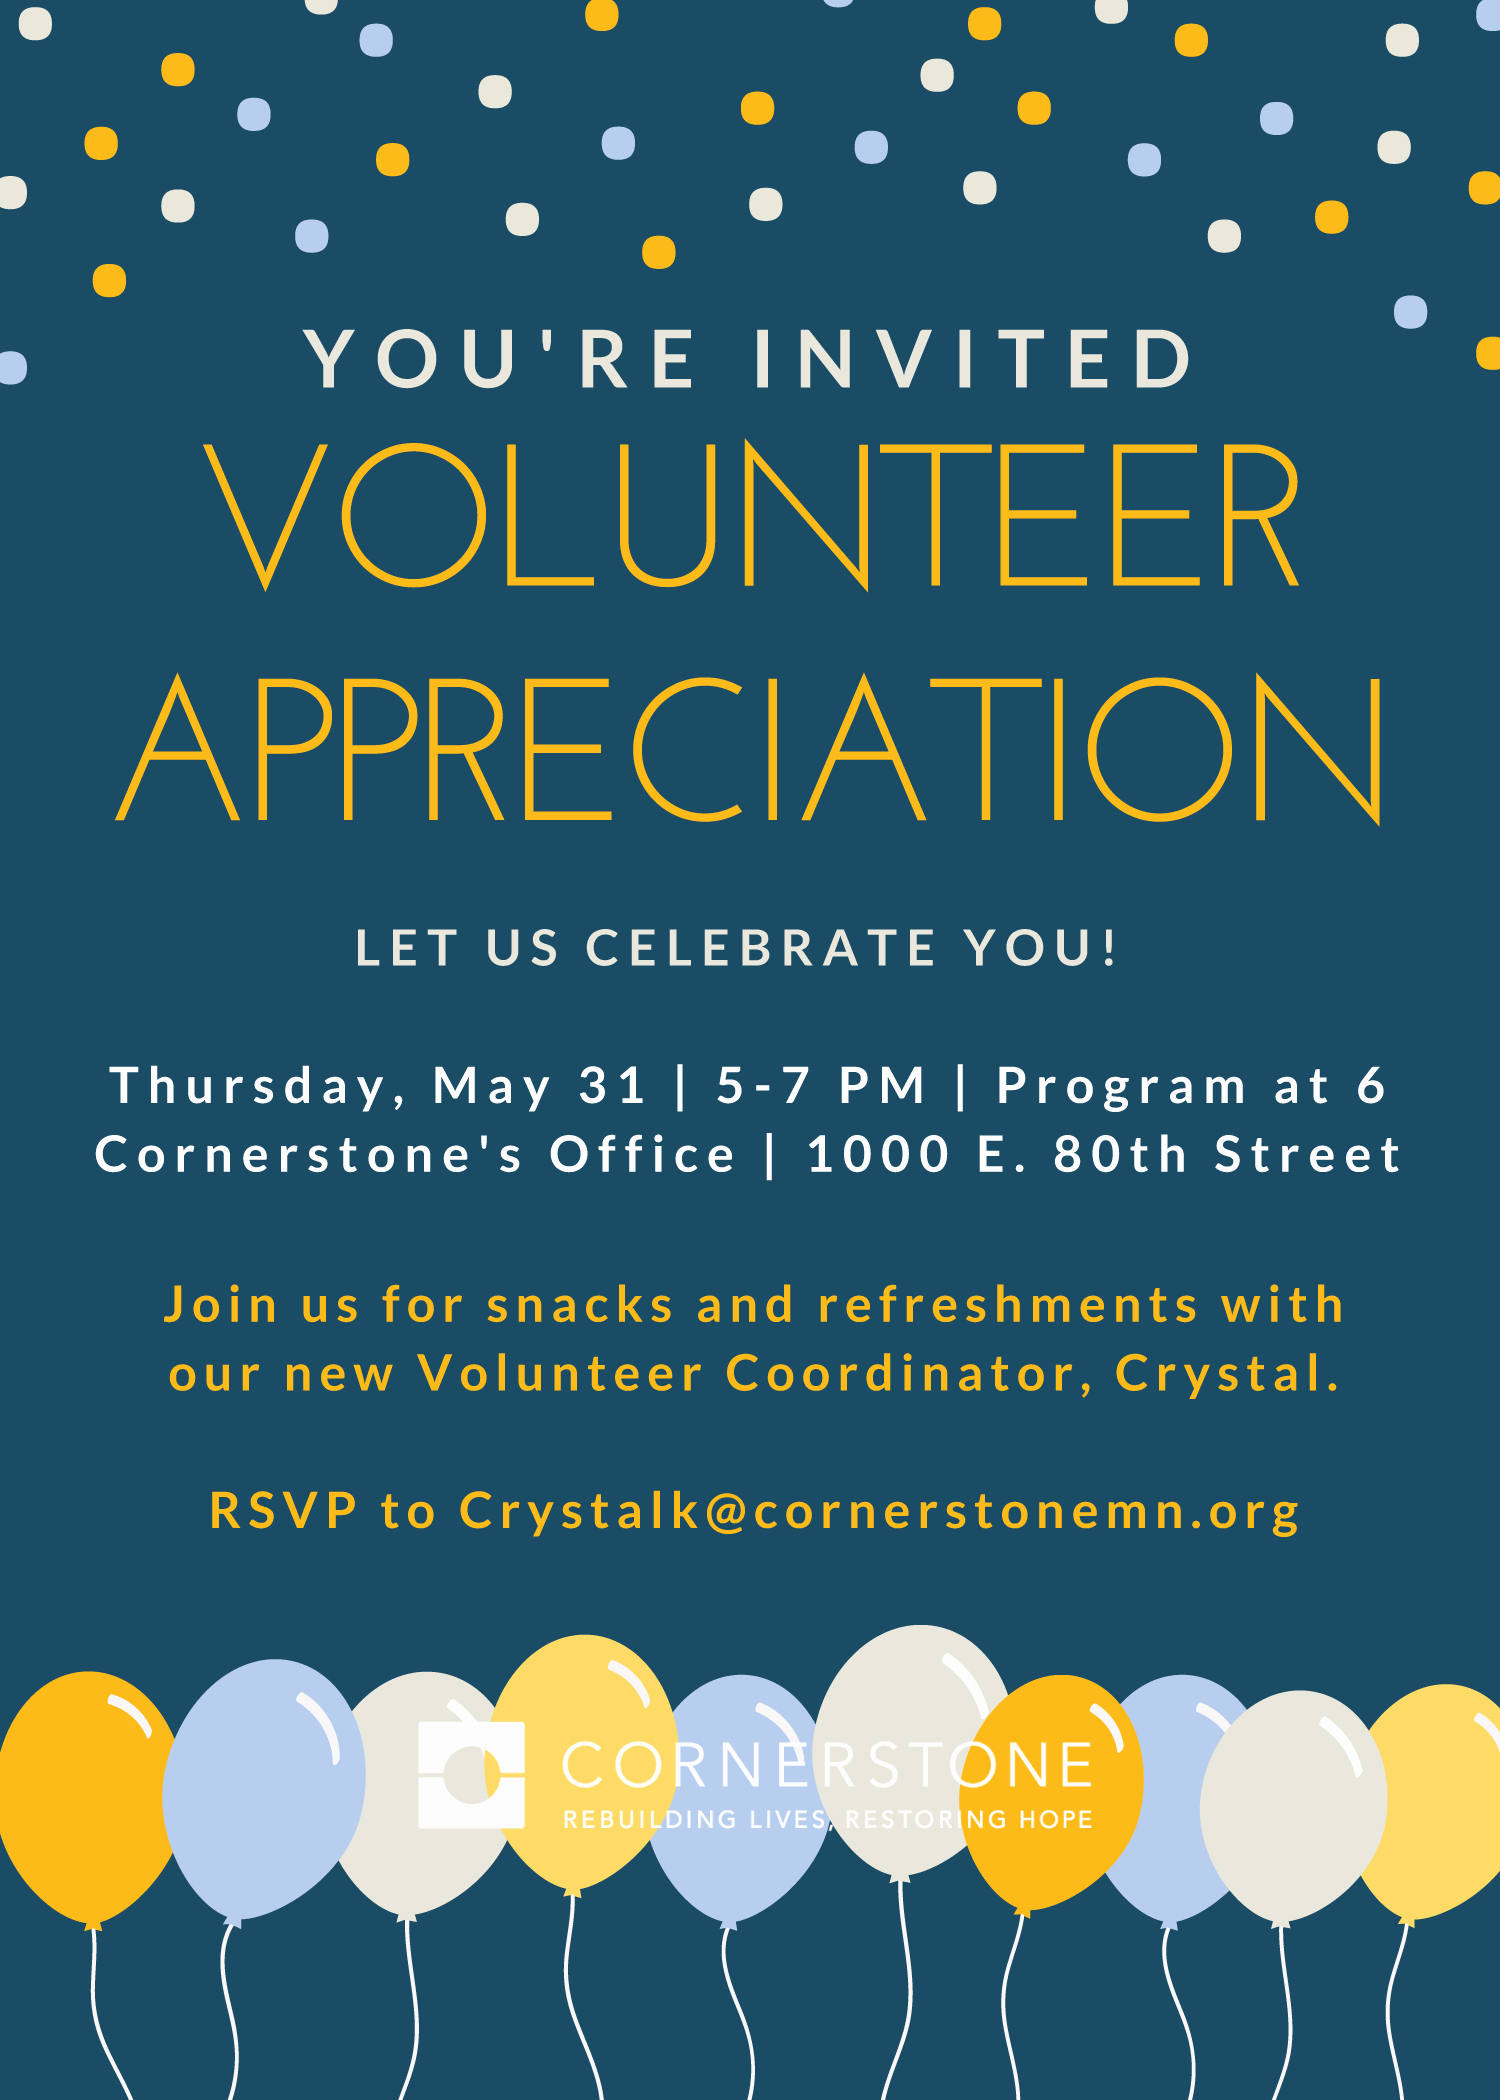 Volunteer Appreciation Invitation Wording Best Of 2018 Volunteer Appreciation